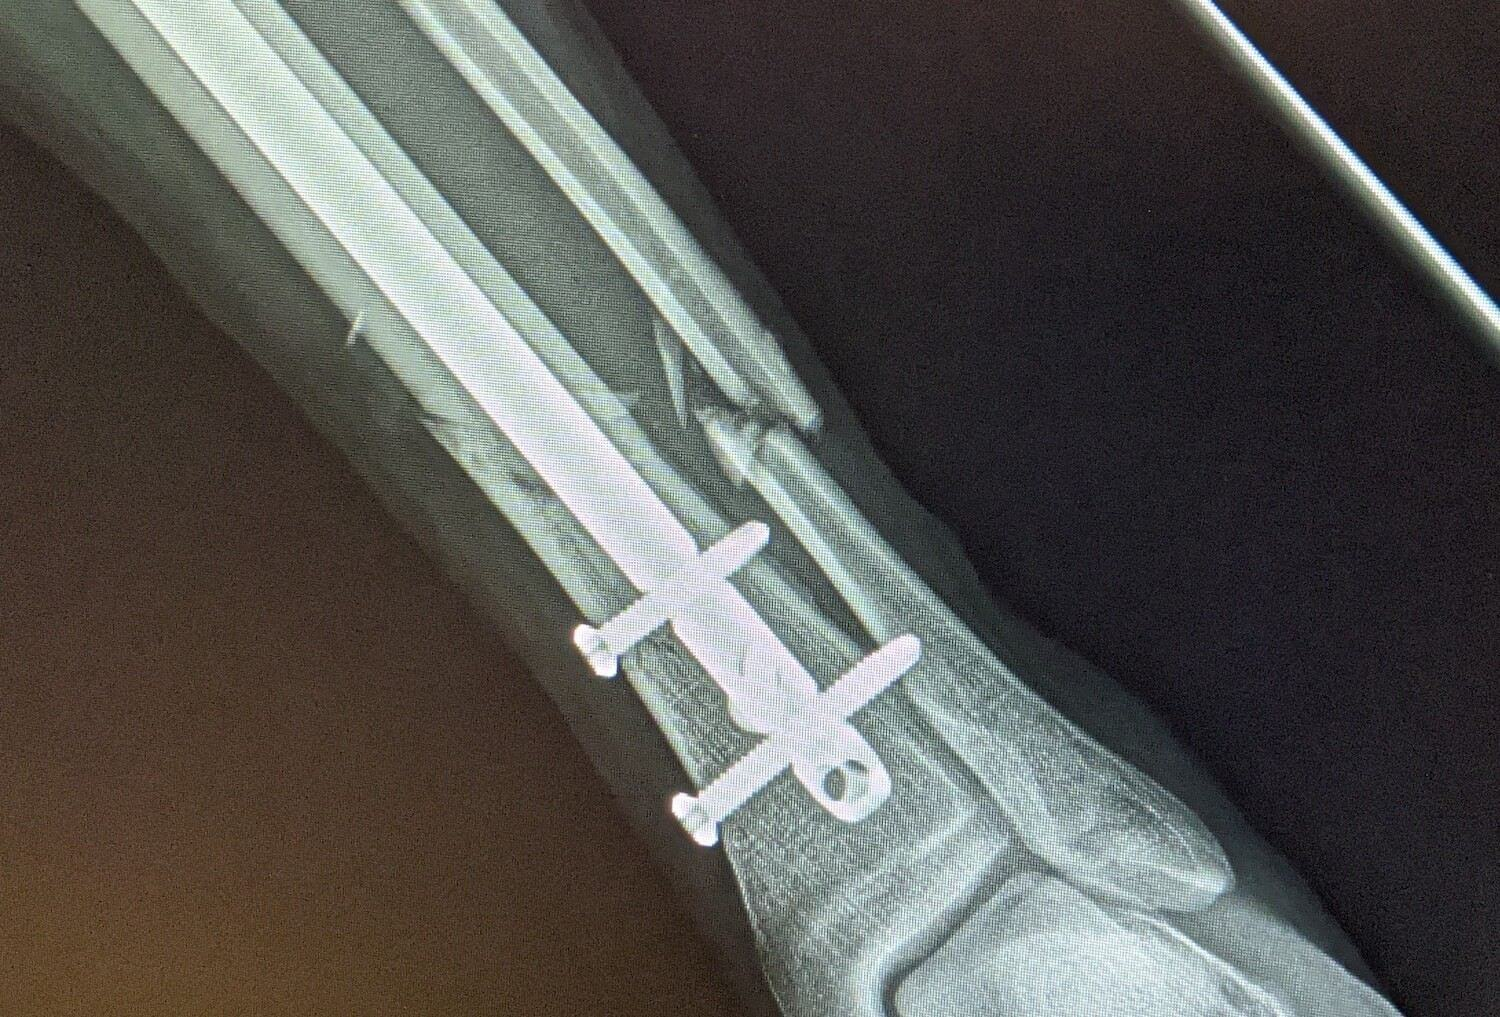 X-ray of an intramedullary nail in left tibia with a fractured fibula